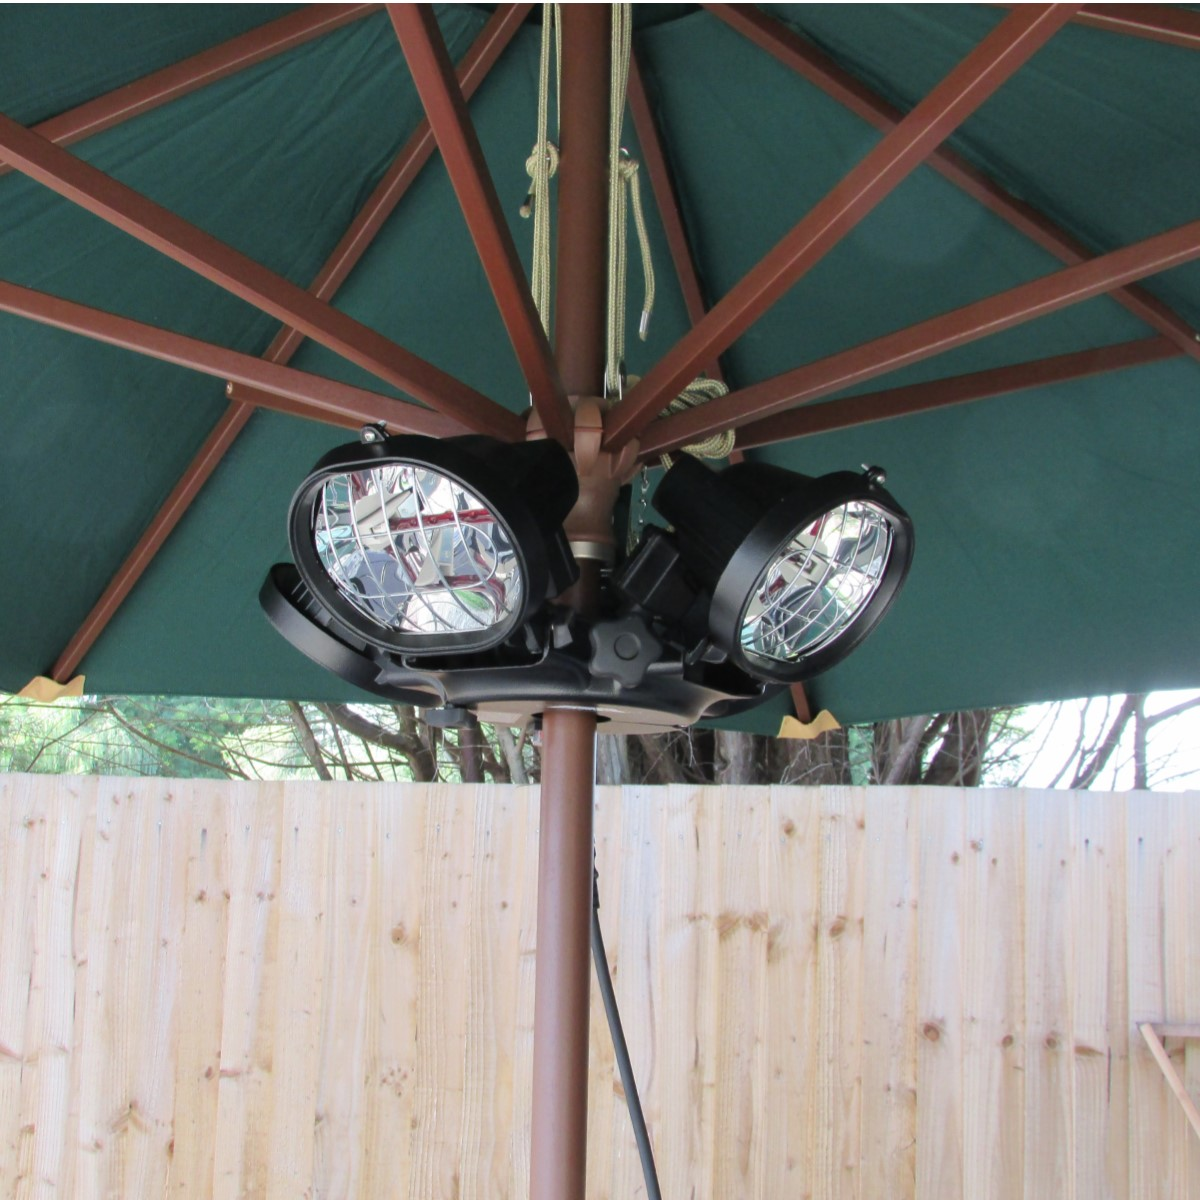 An electric lamp patio heater that can be fixed underneath a parasol to warm diners at outdoor tables in hospitality venues